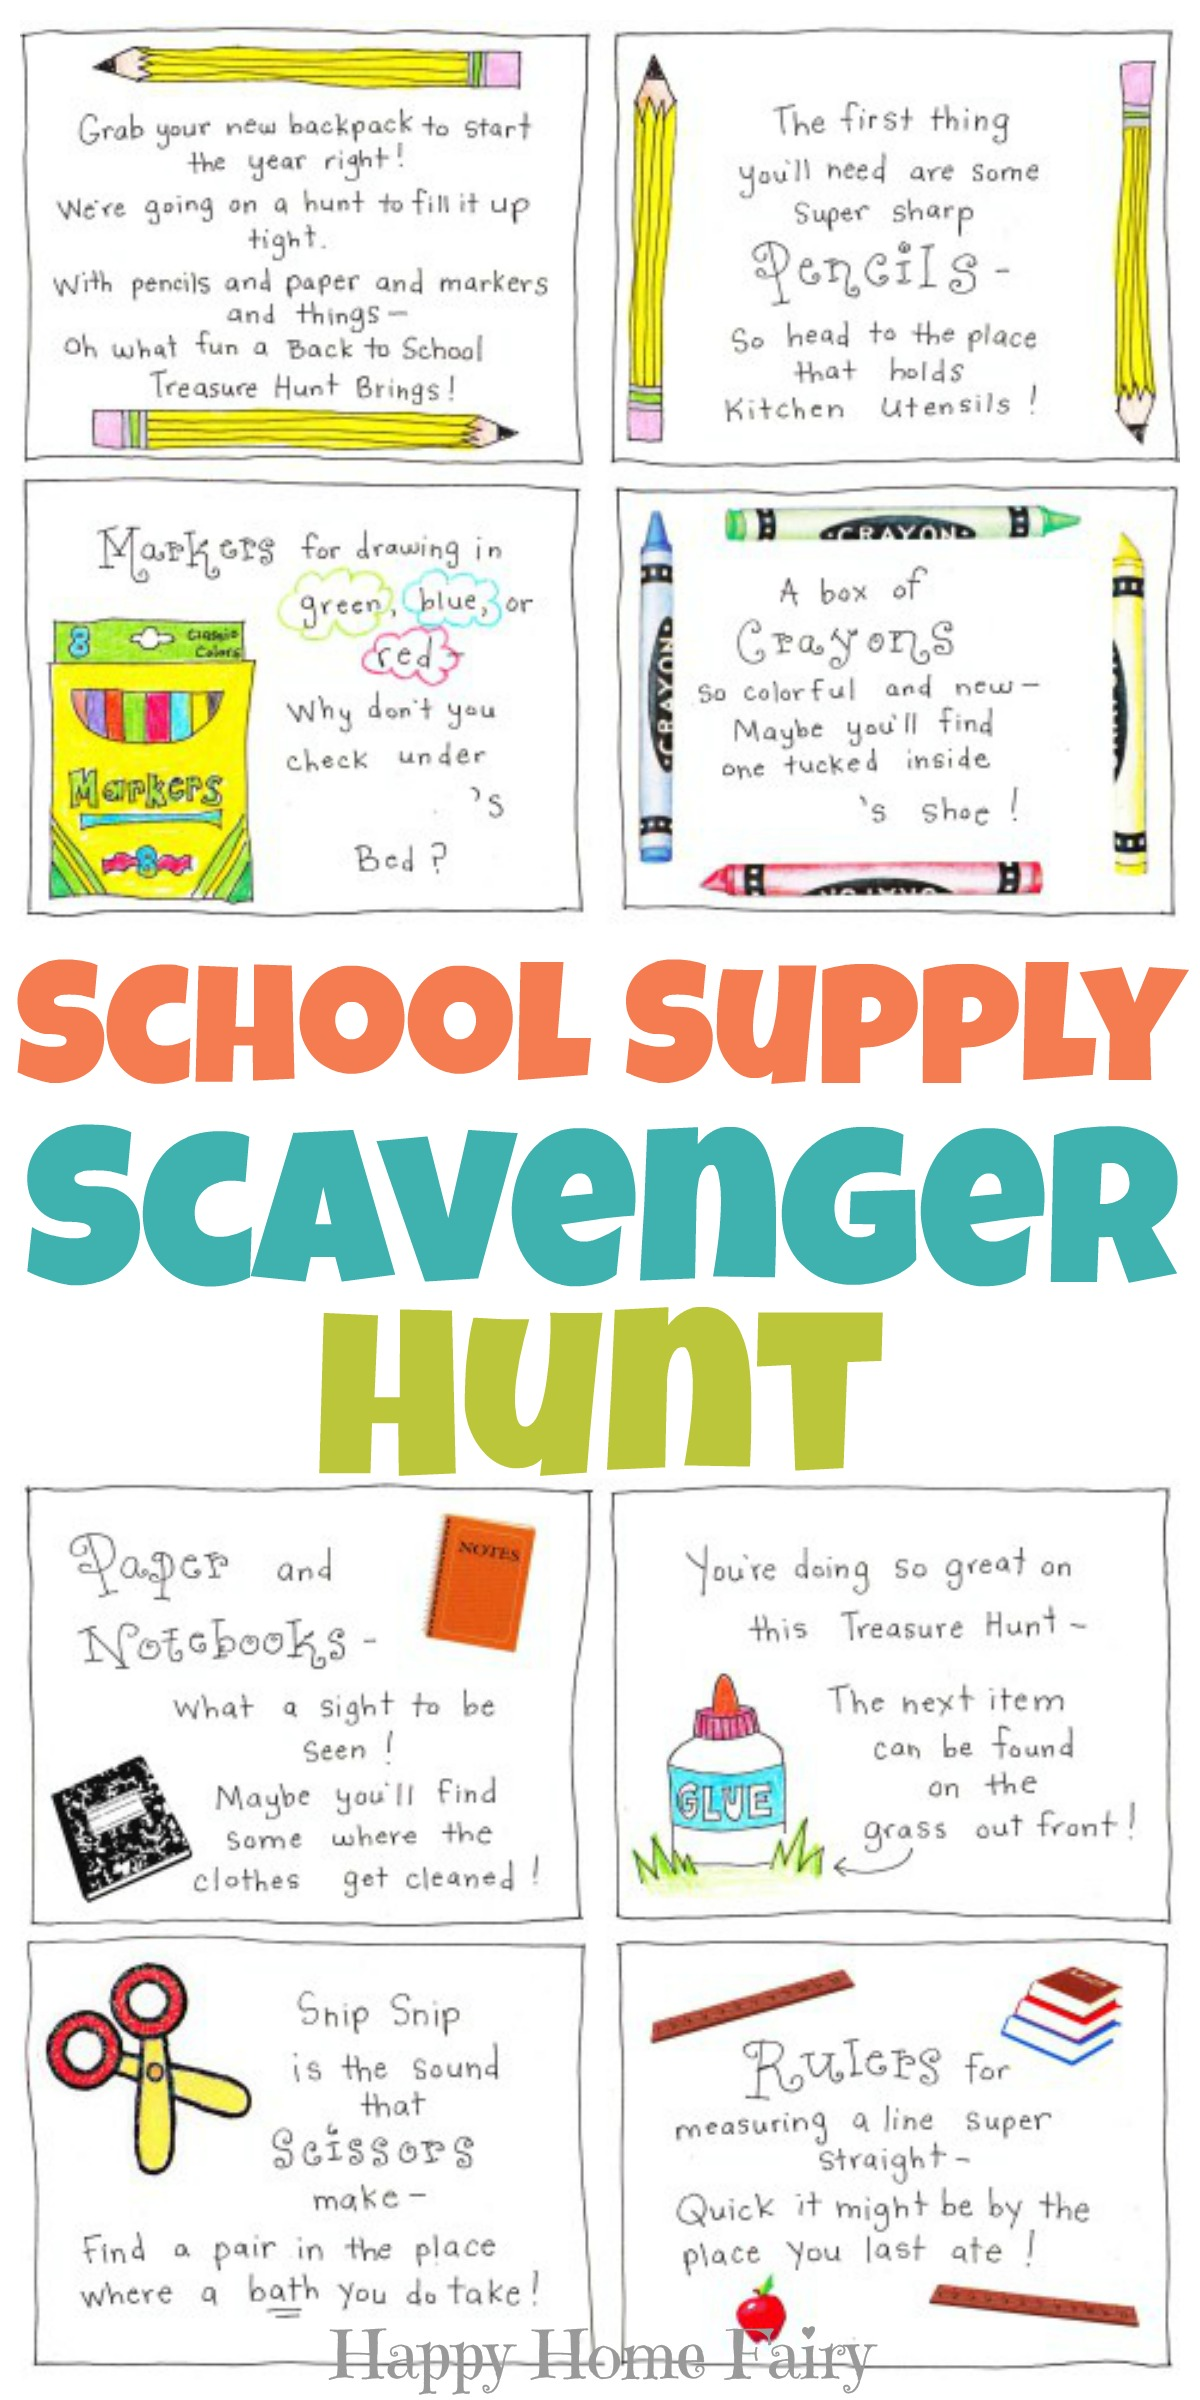 Back to School Supply Scavenger Hunt FREE Printable Happy